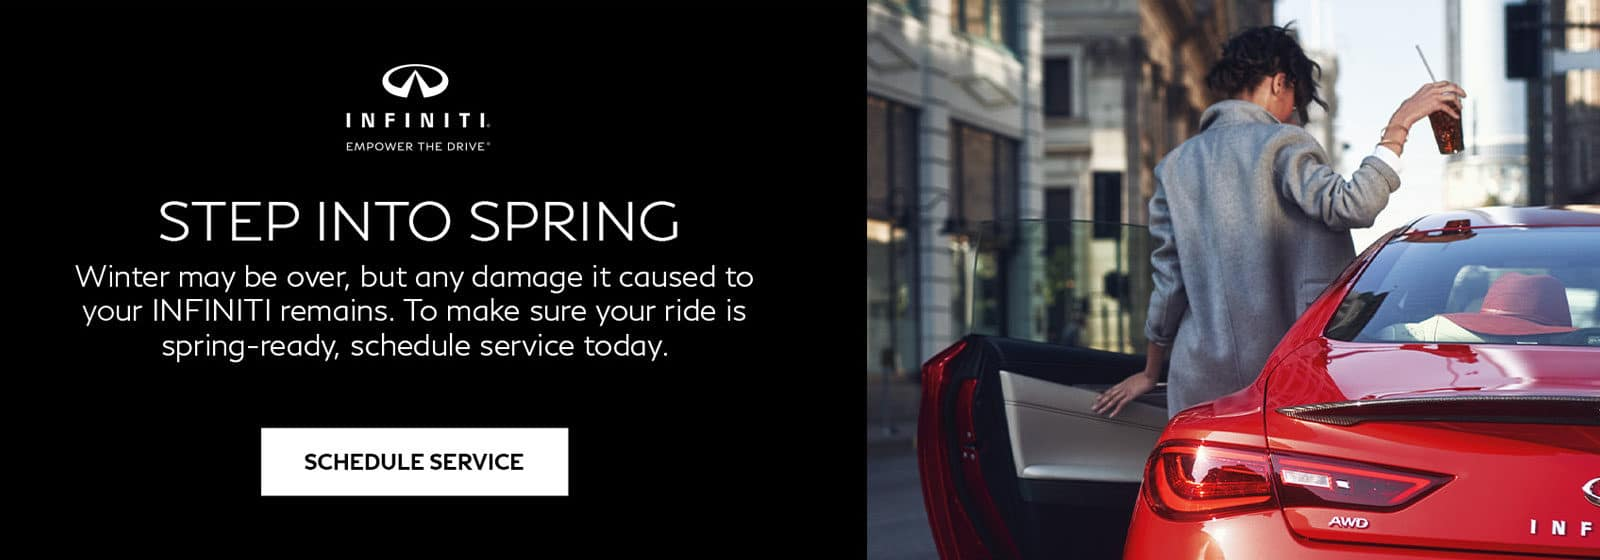 Get your INFINITI ready for spring, schedule service.